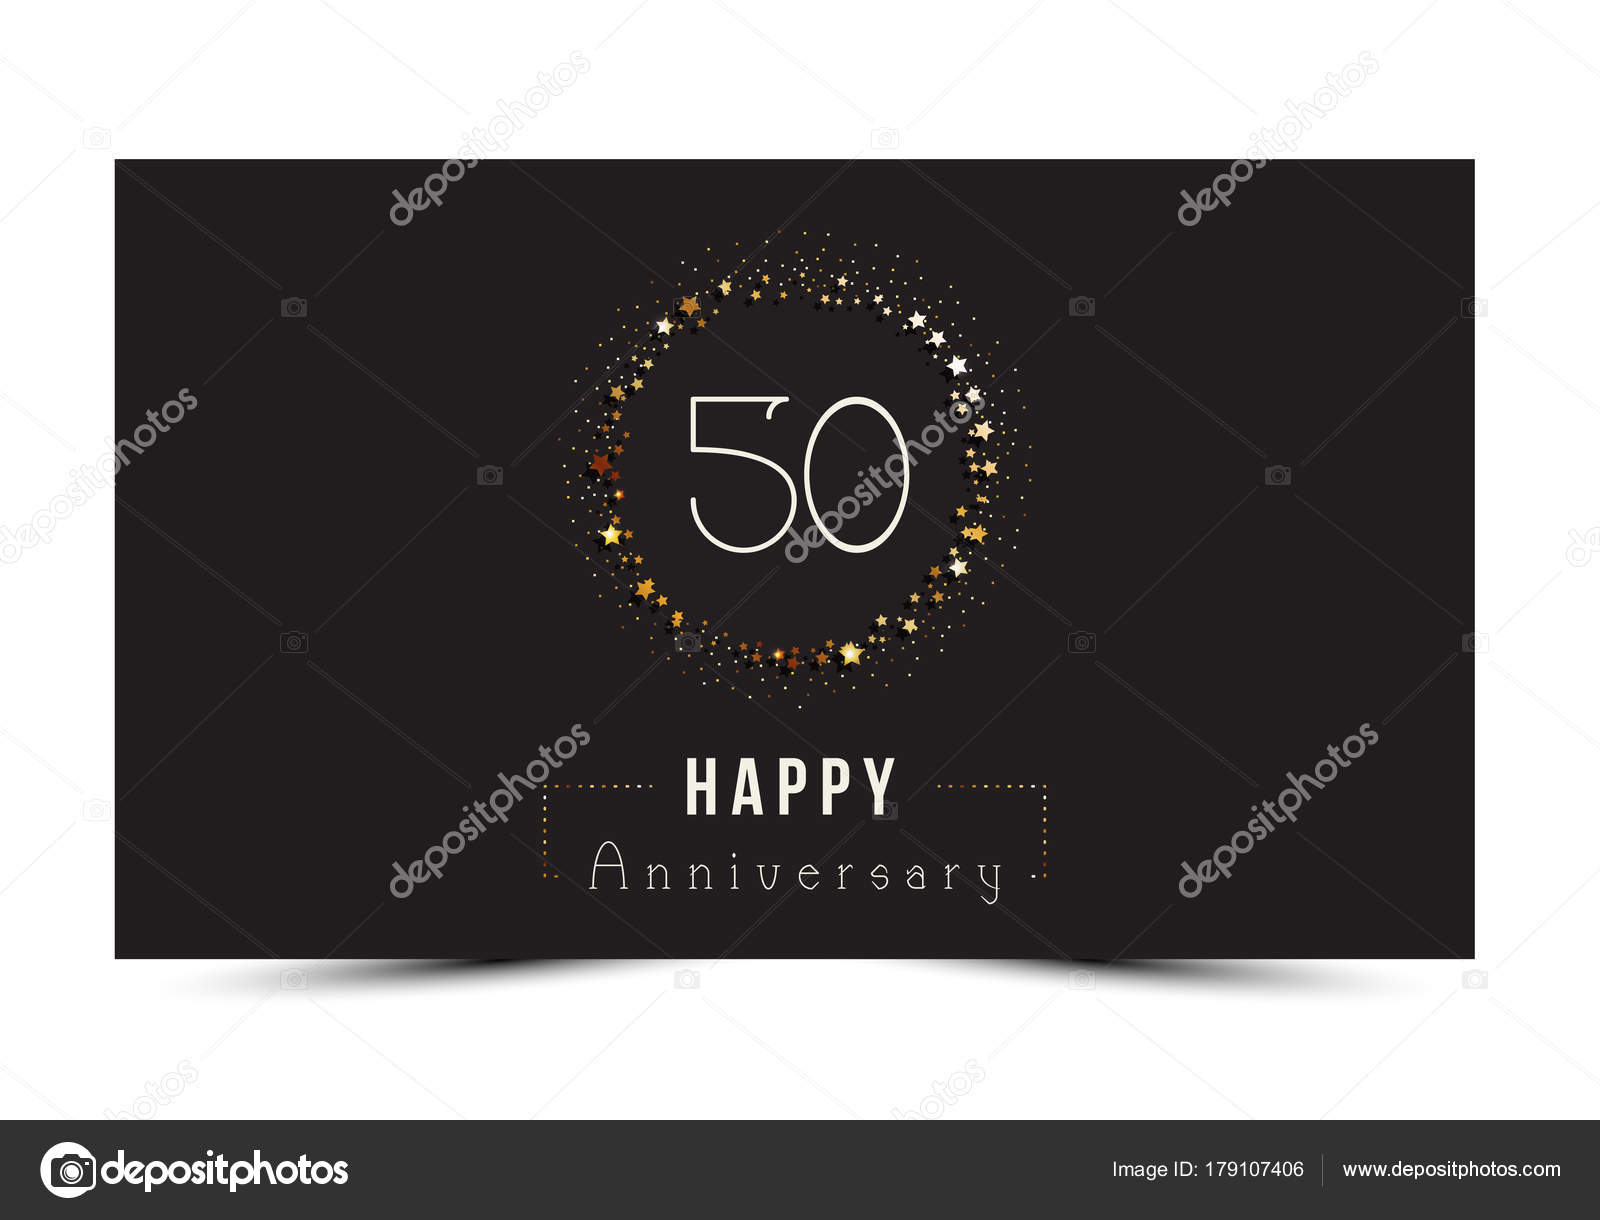 50 years happy anniversary card template with gold stars. u2014 stock